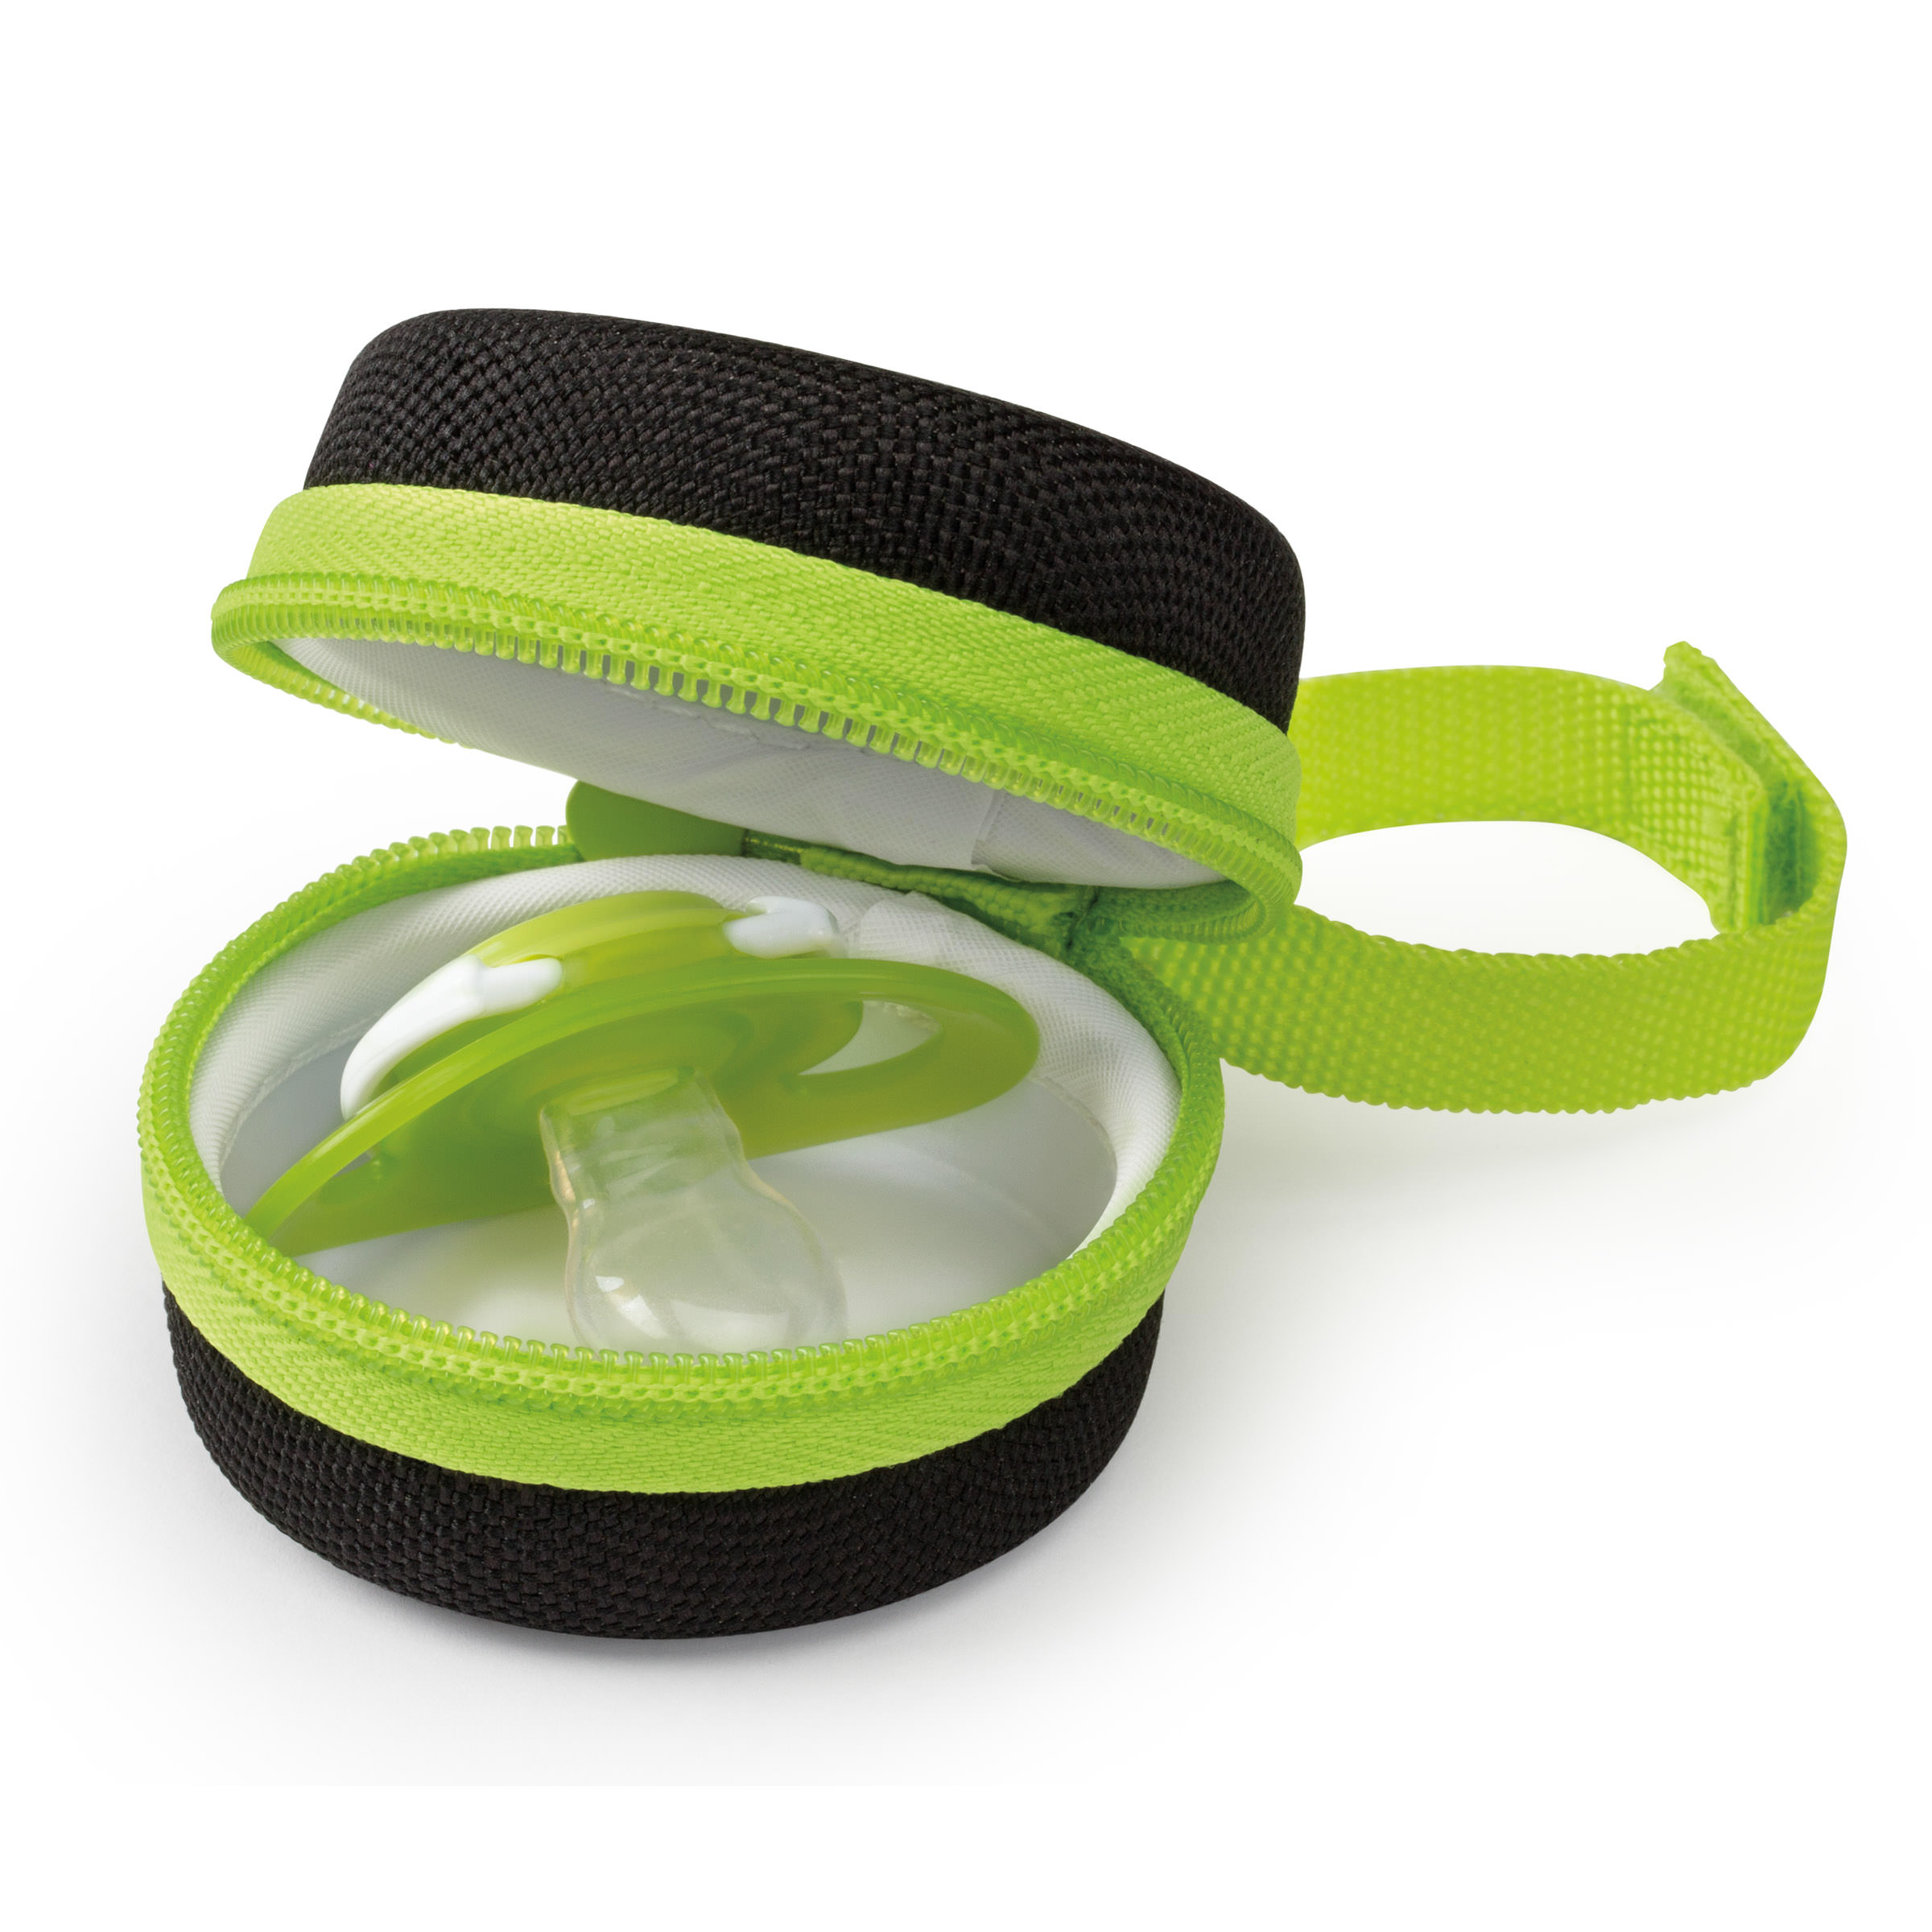 Chicco Paci-Roo Travel Pacifier Case